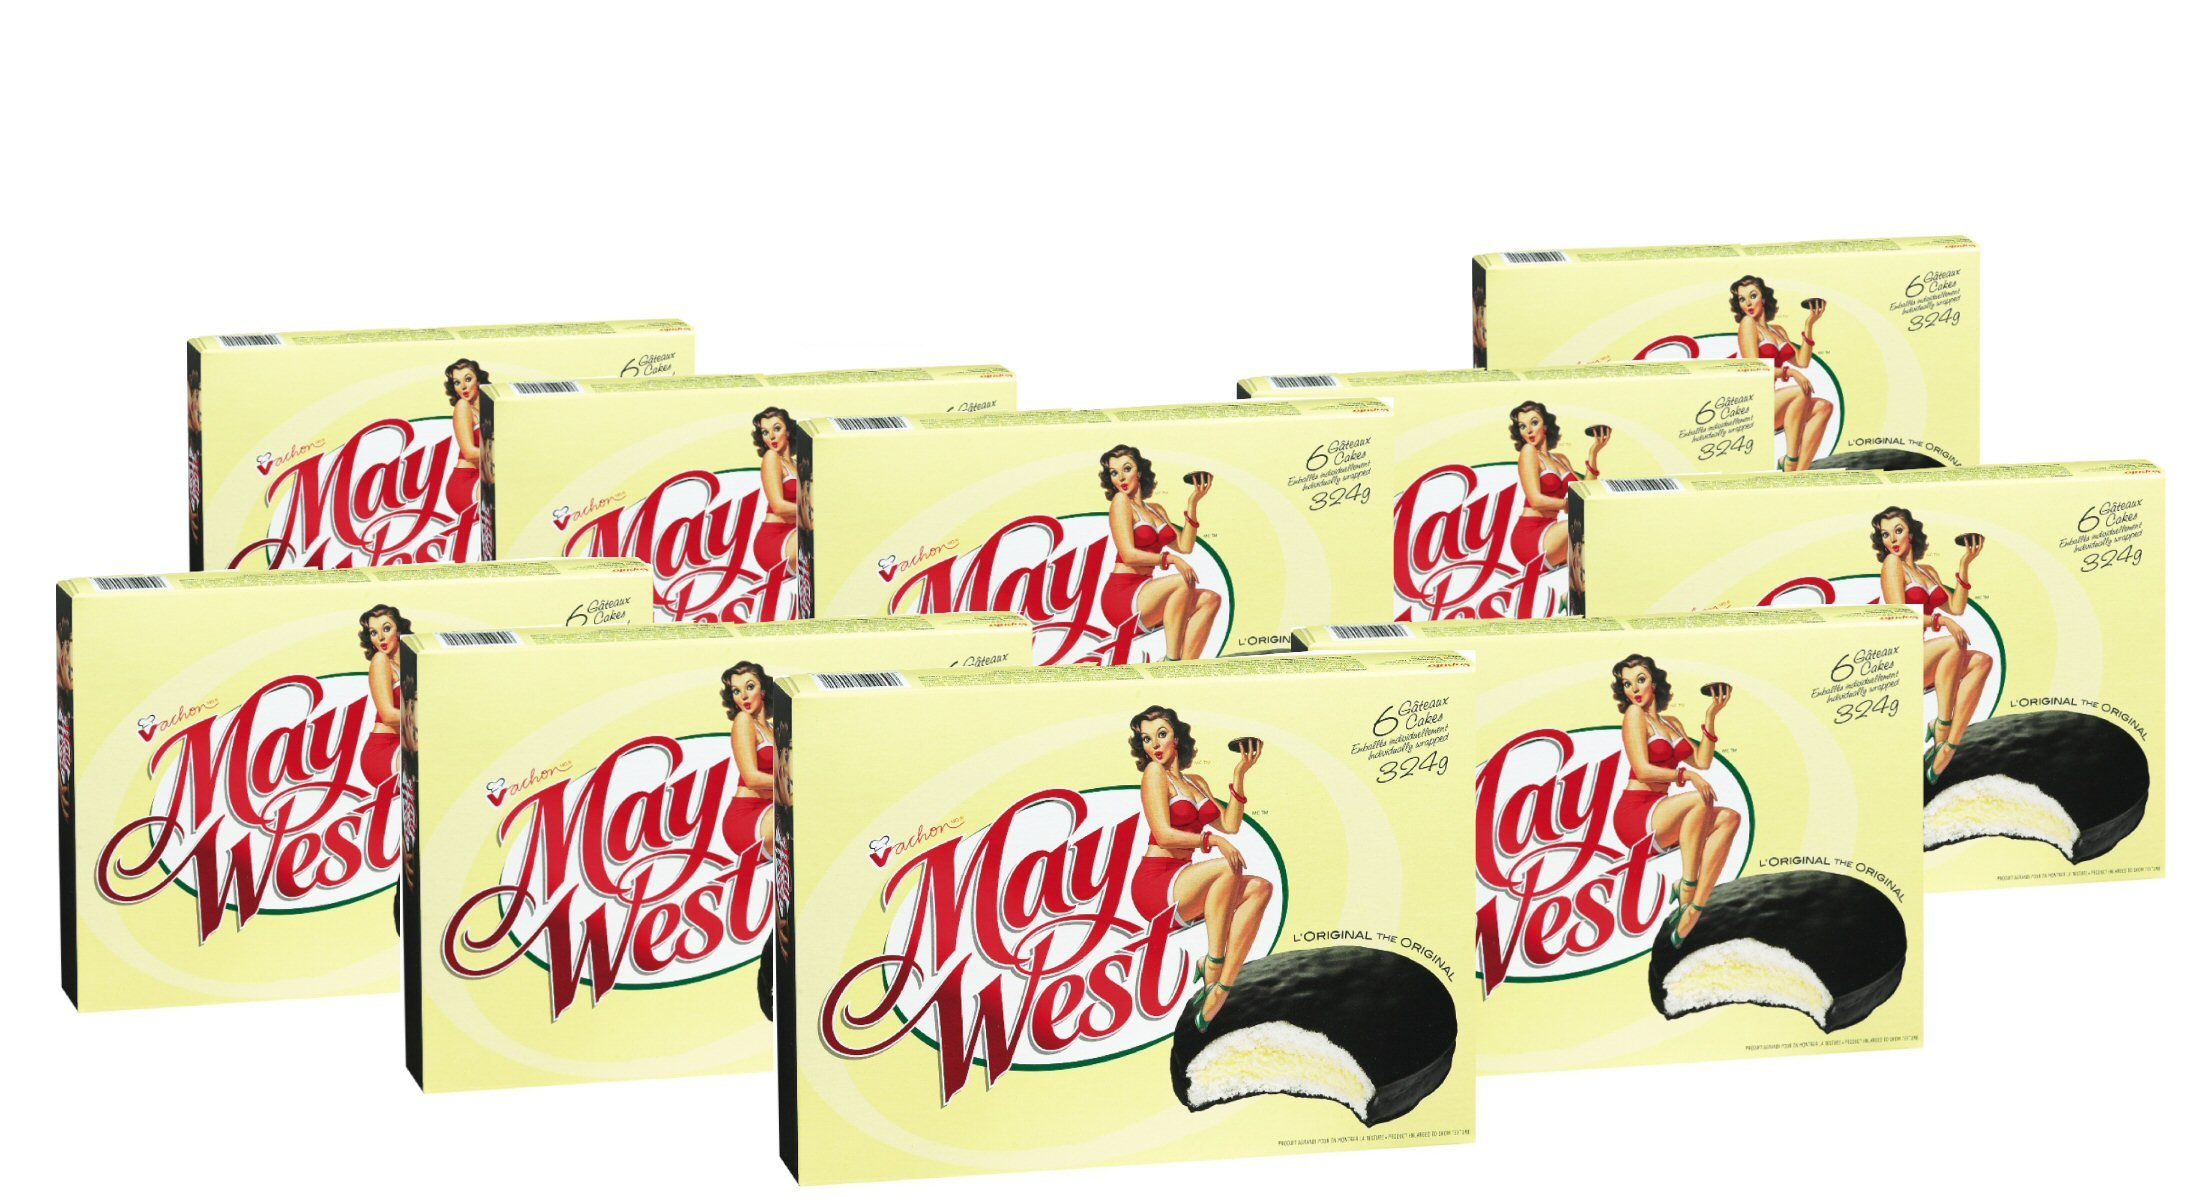 (10 Box) 6 Cakes Vachon the Original May West Cakes